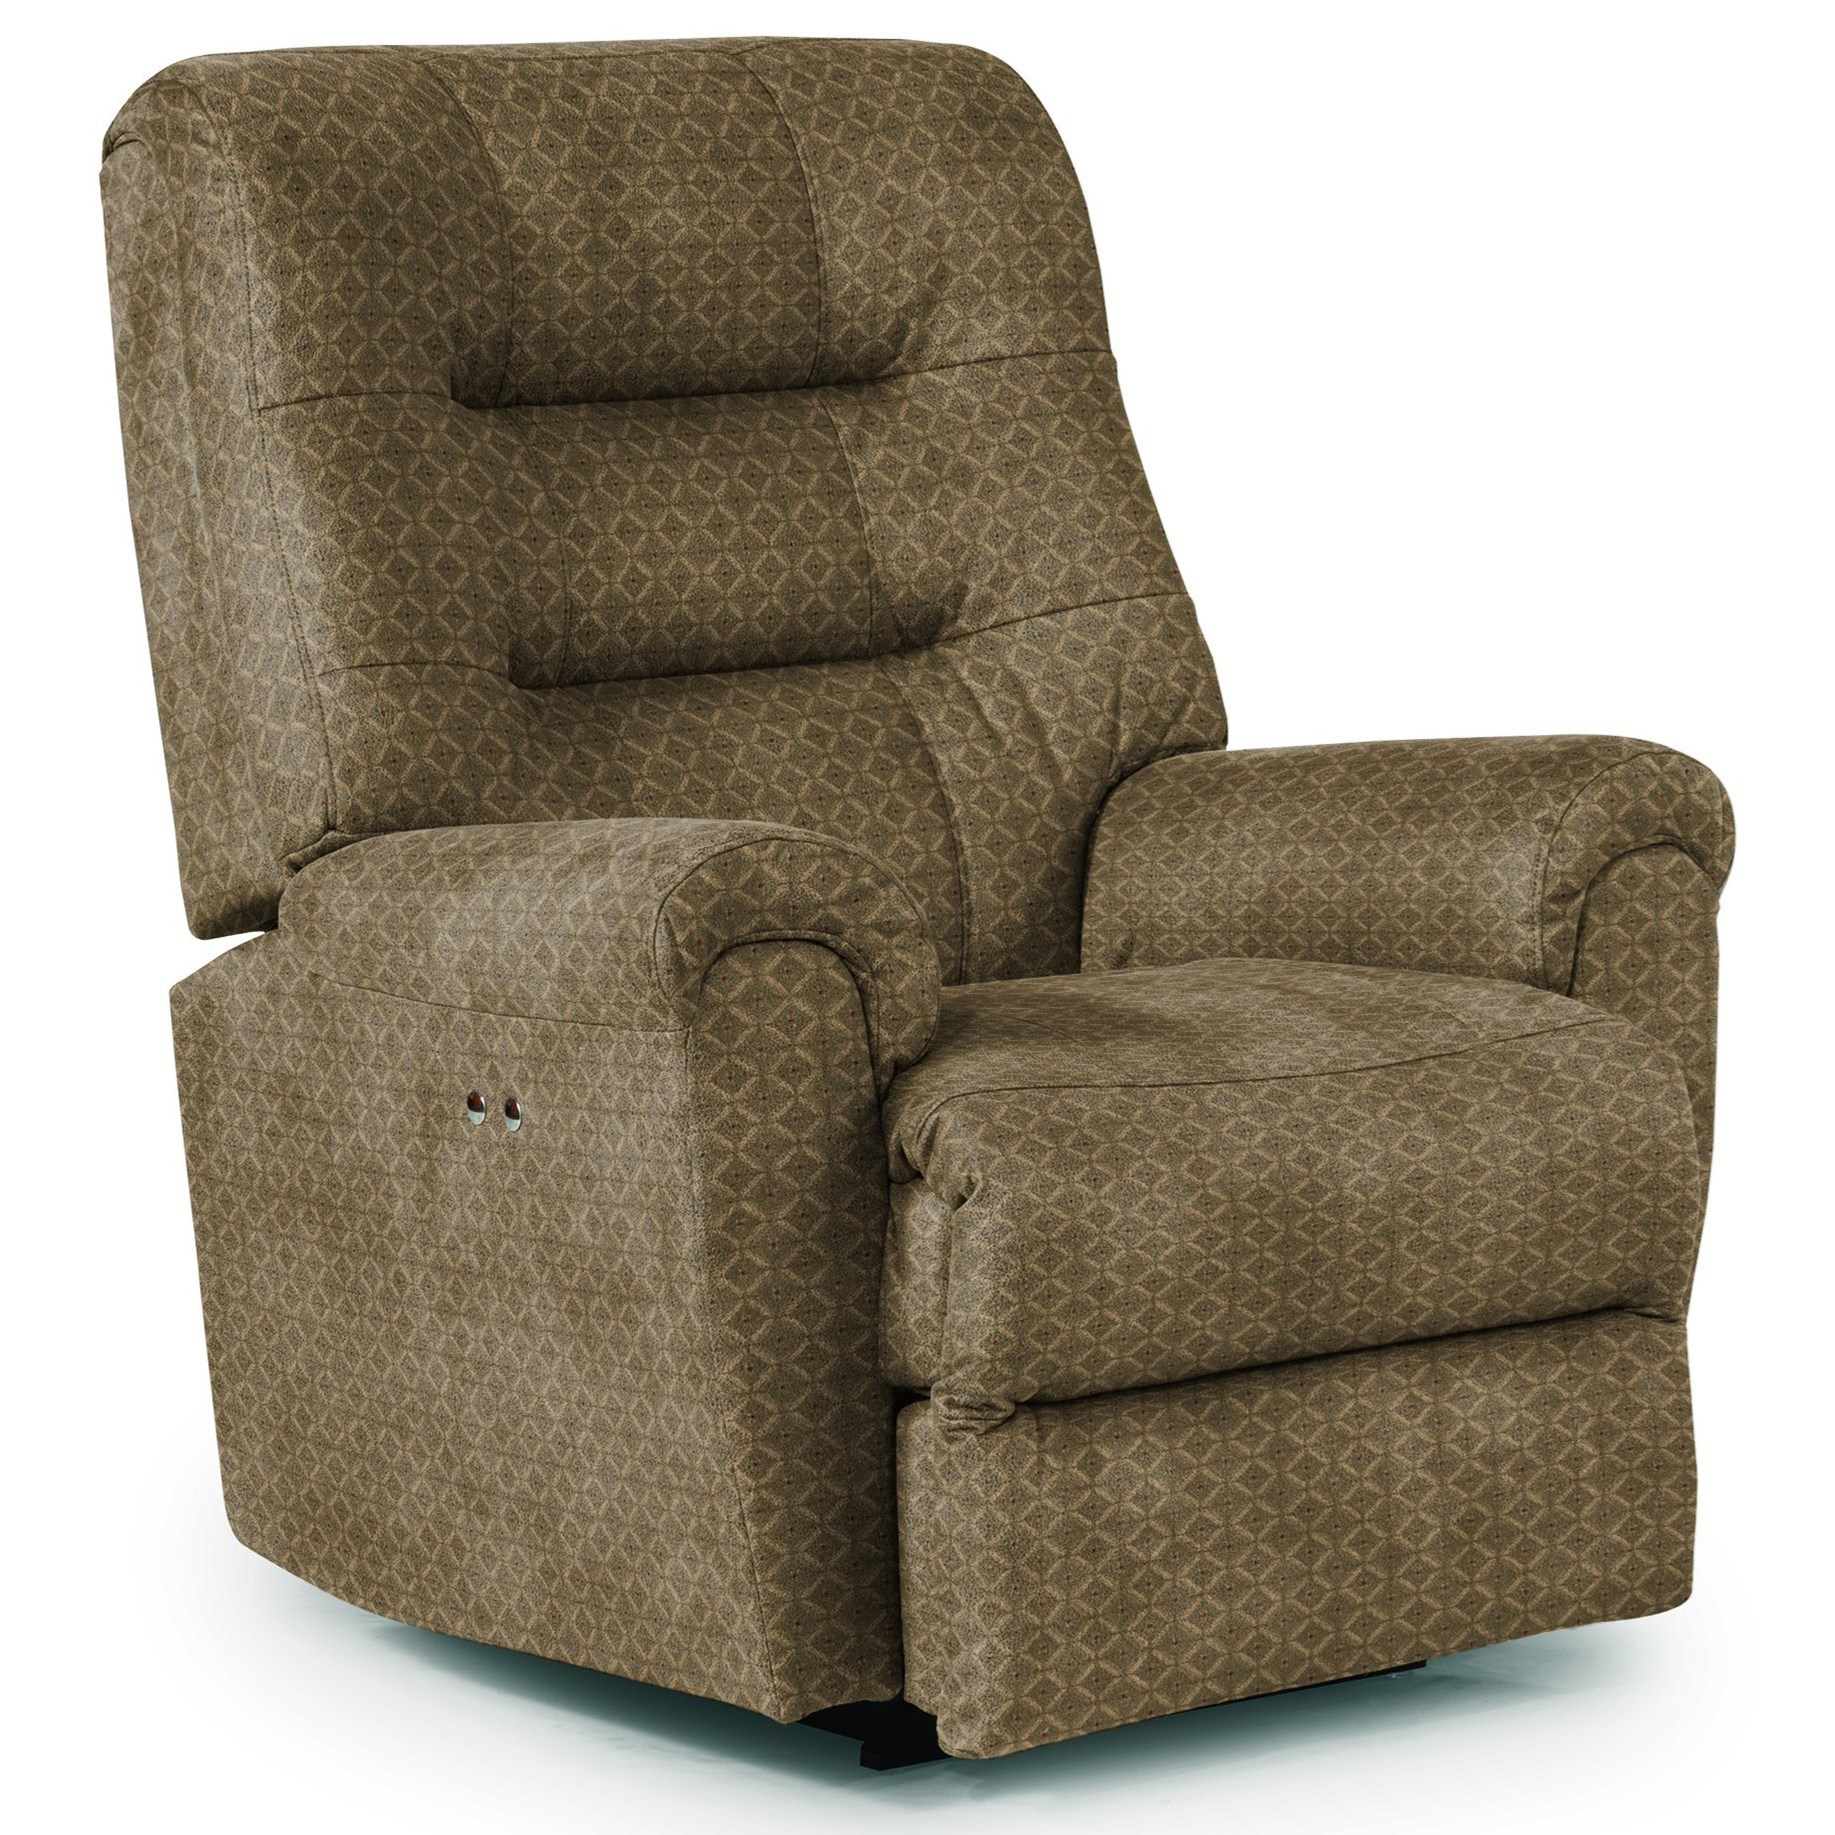 Best Home Furnishings Recliners - Medium Langston Power Space Saver Recliner - Item Number: -677908475-18021